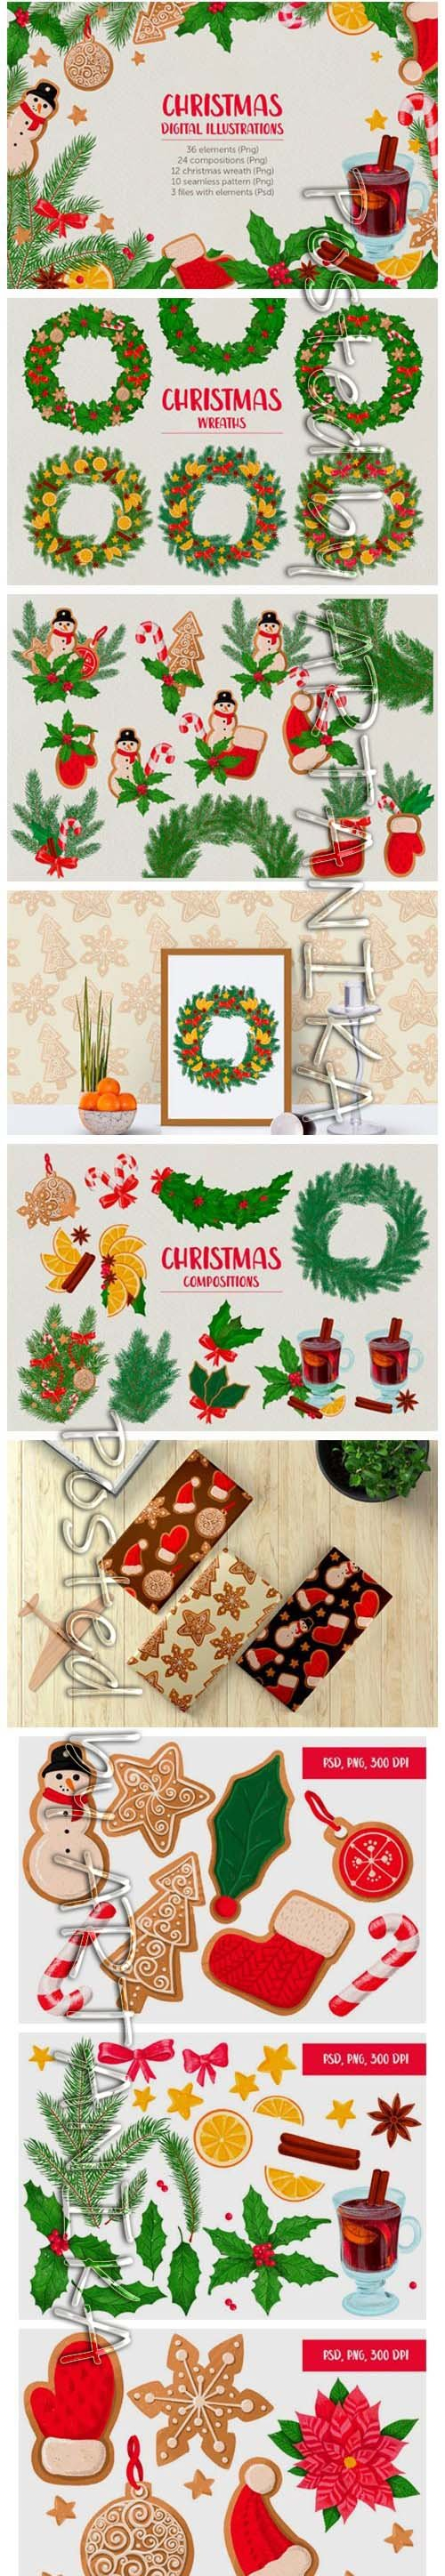 Christmas Digital Illustration Set 2149984